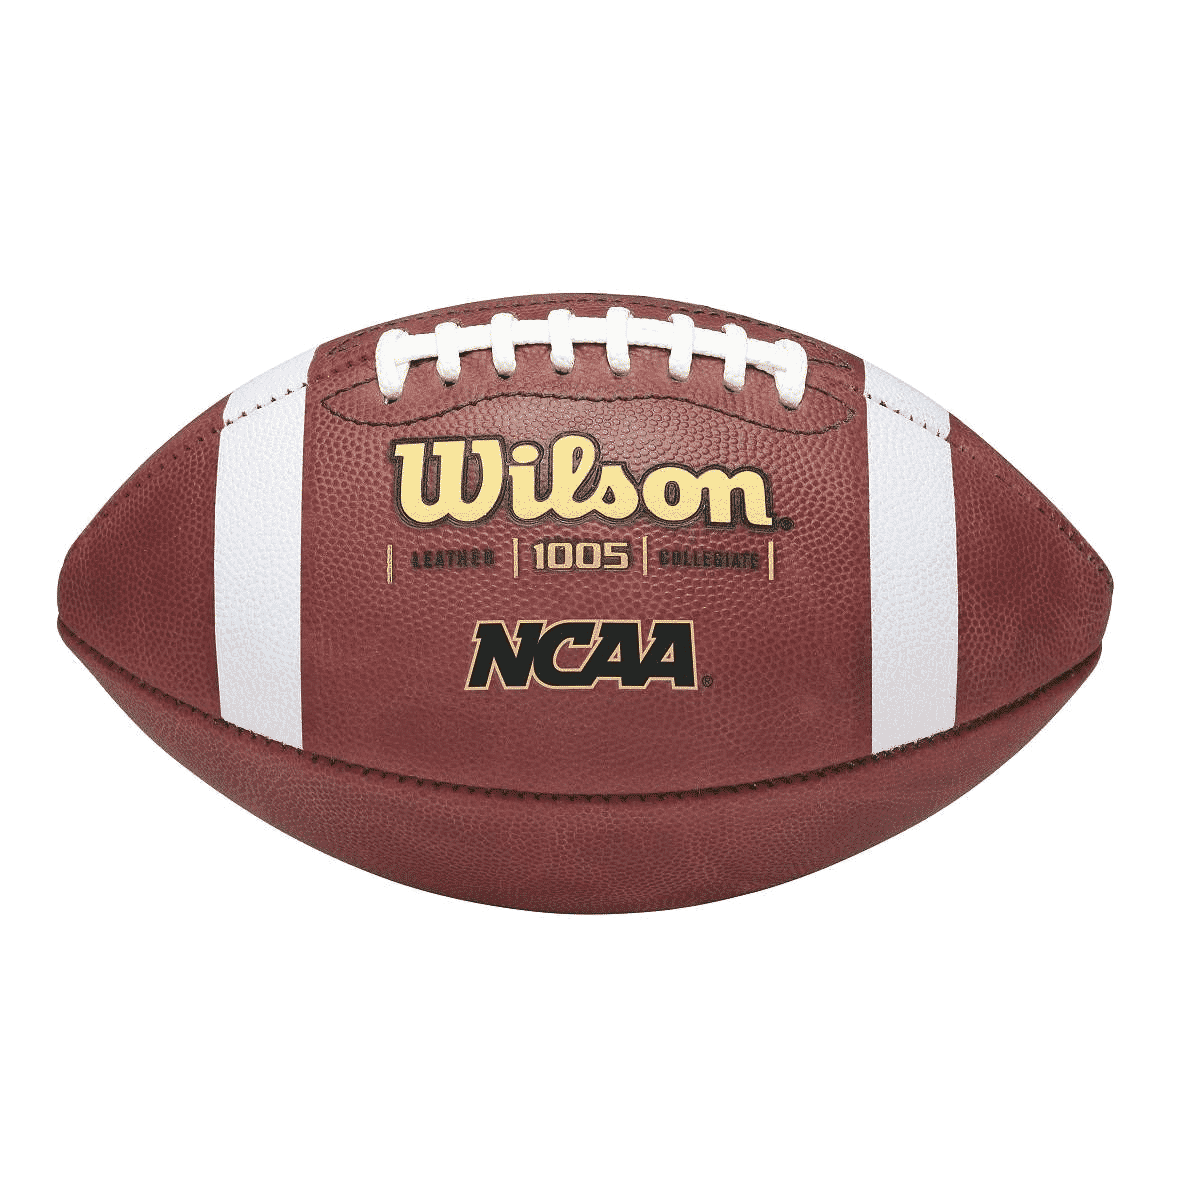 NFLPA Collegiate Bowl Tickets | Rose Bowl Hotels